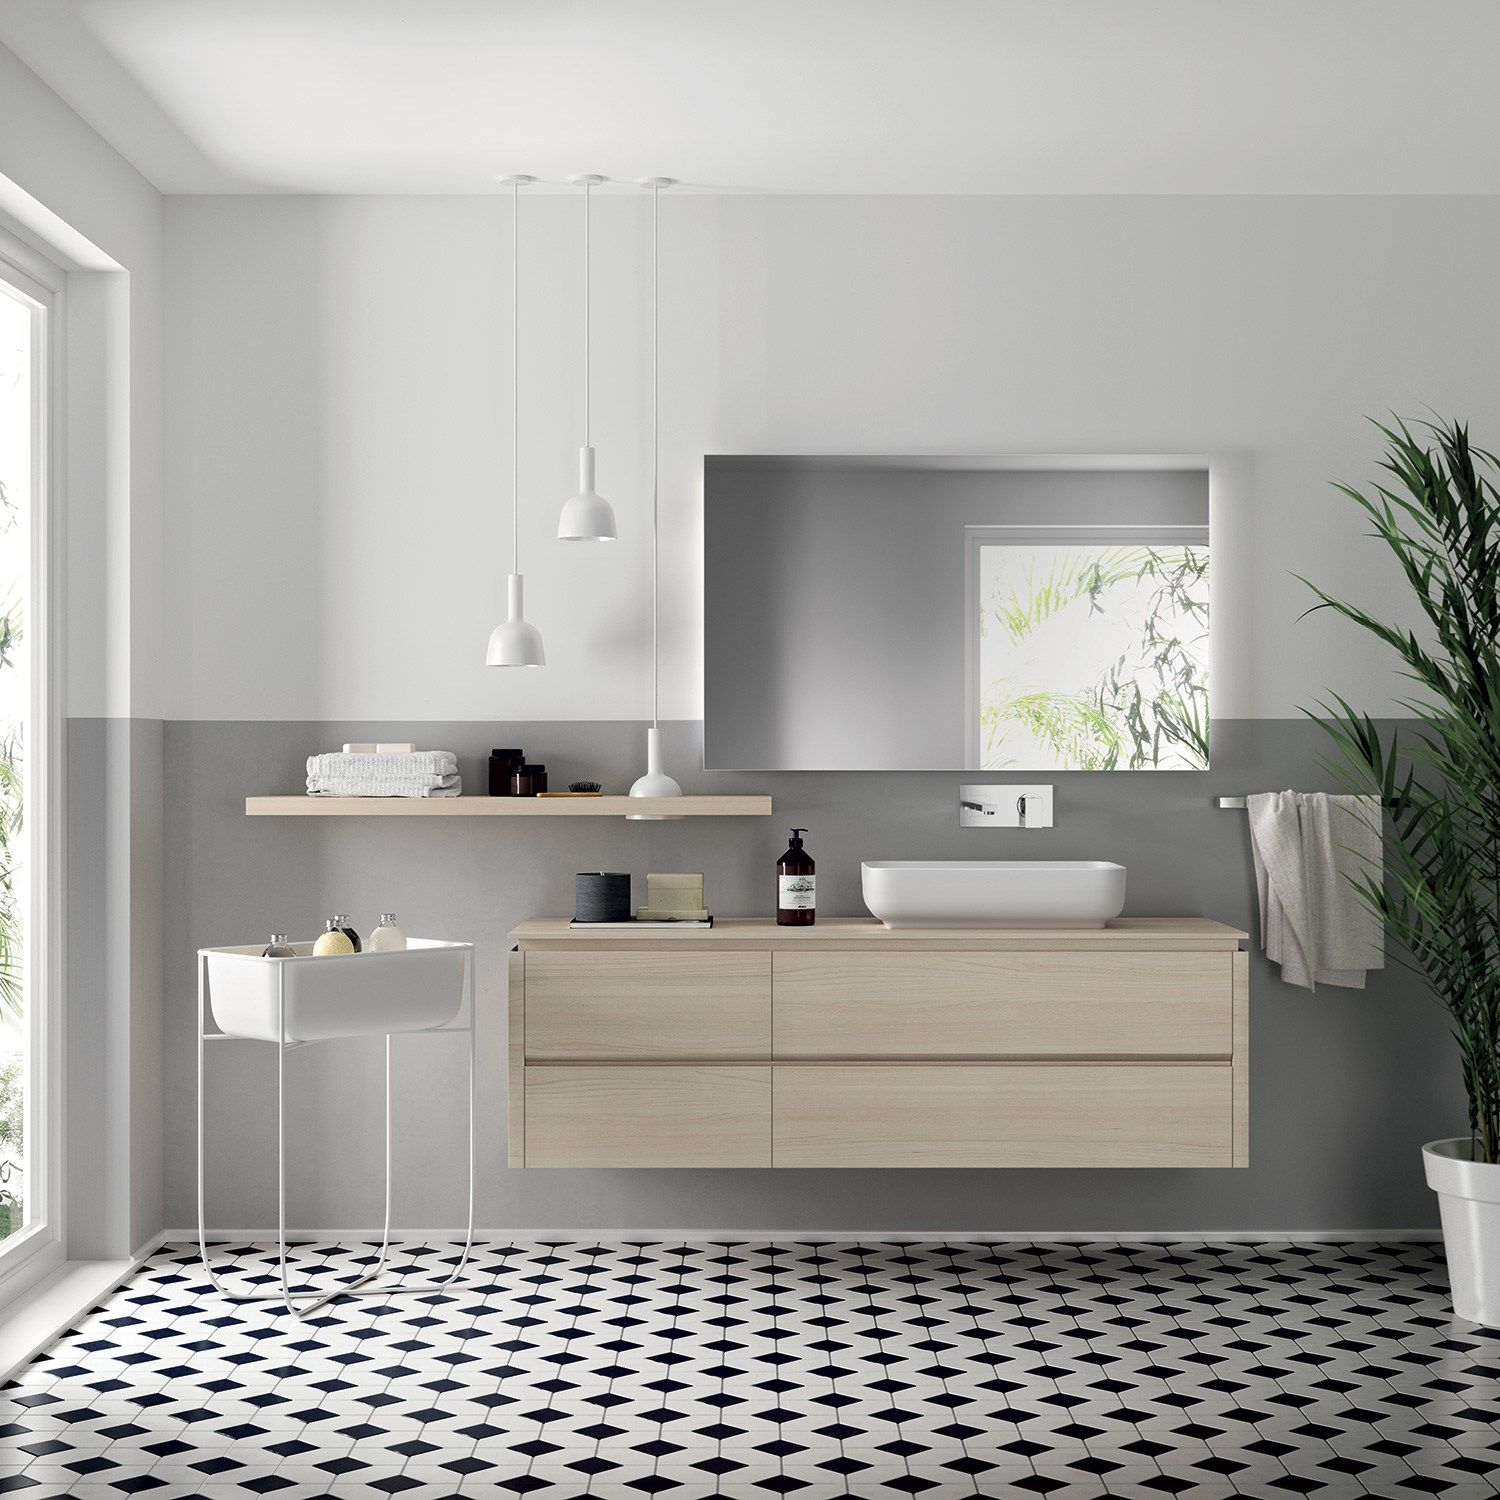 Bathroom Furniture Set Ki By Scavolini Bathrooms Design Nendo Bathroom Furniture Design Elegant Bathroom Flooring Bathroom Furniture Sets